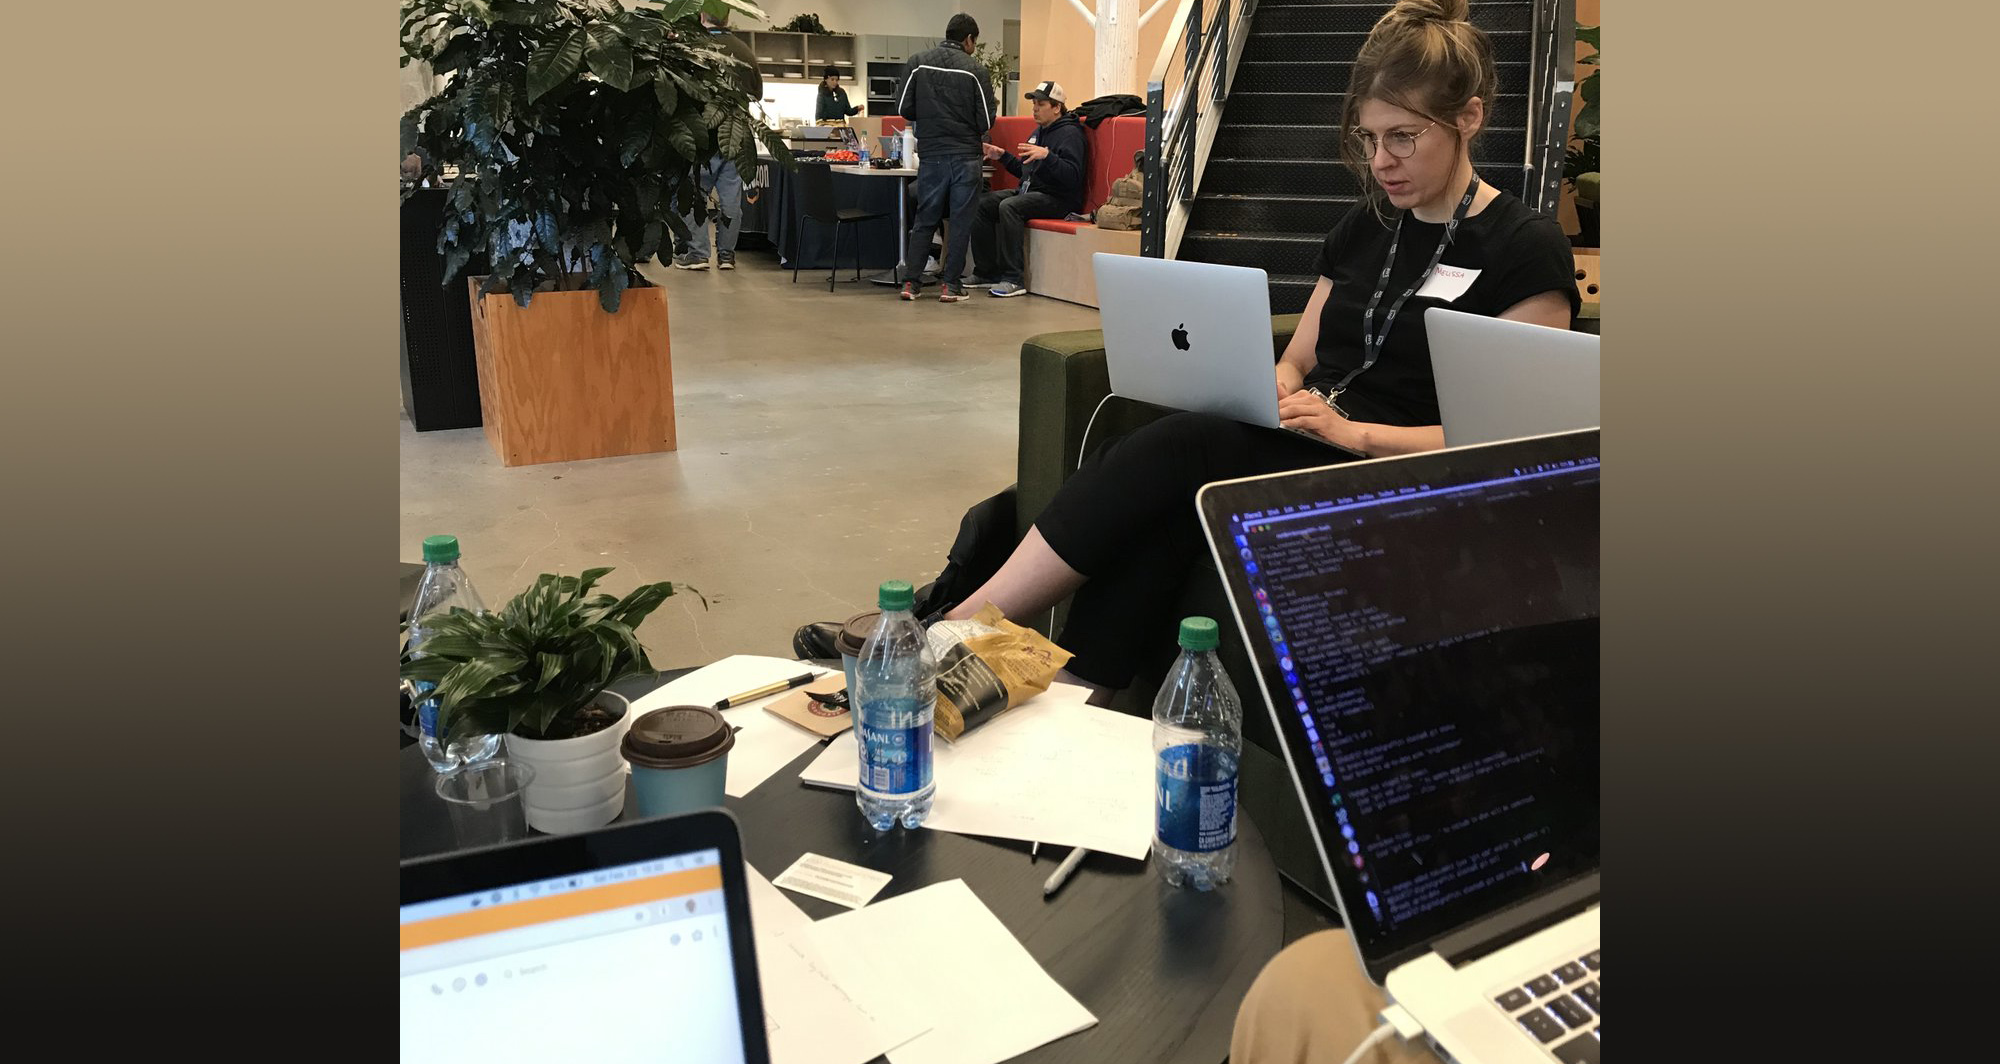 10 lessons from the AWS hackathon